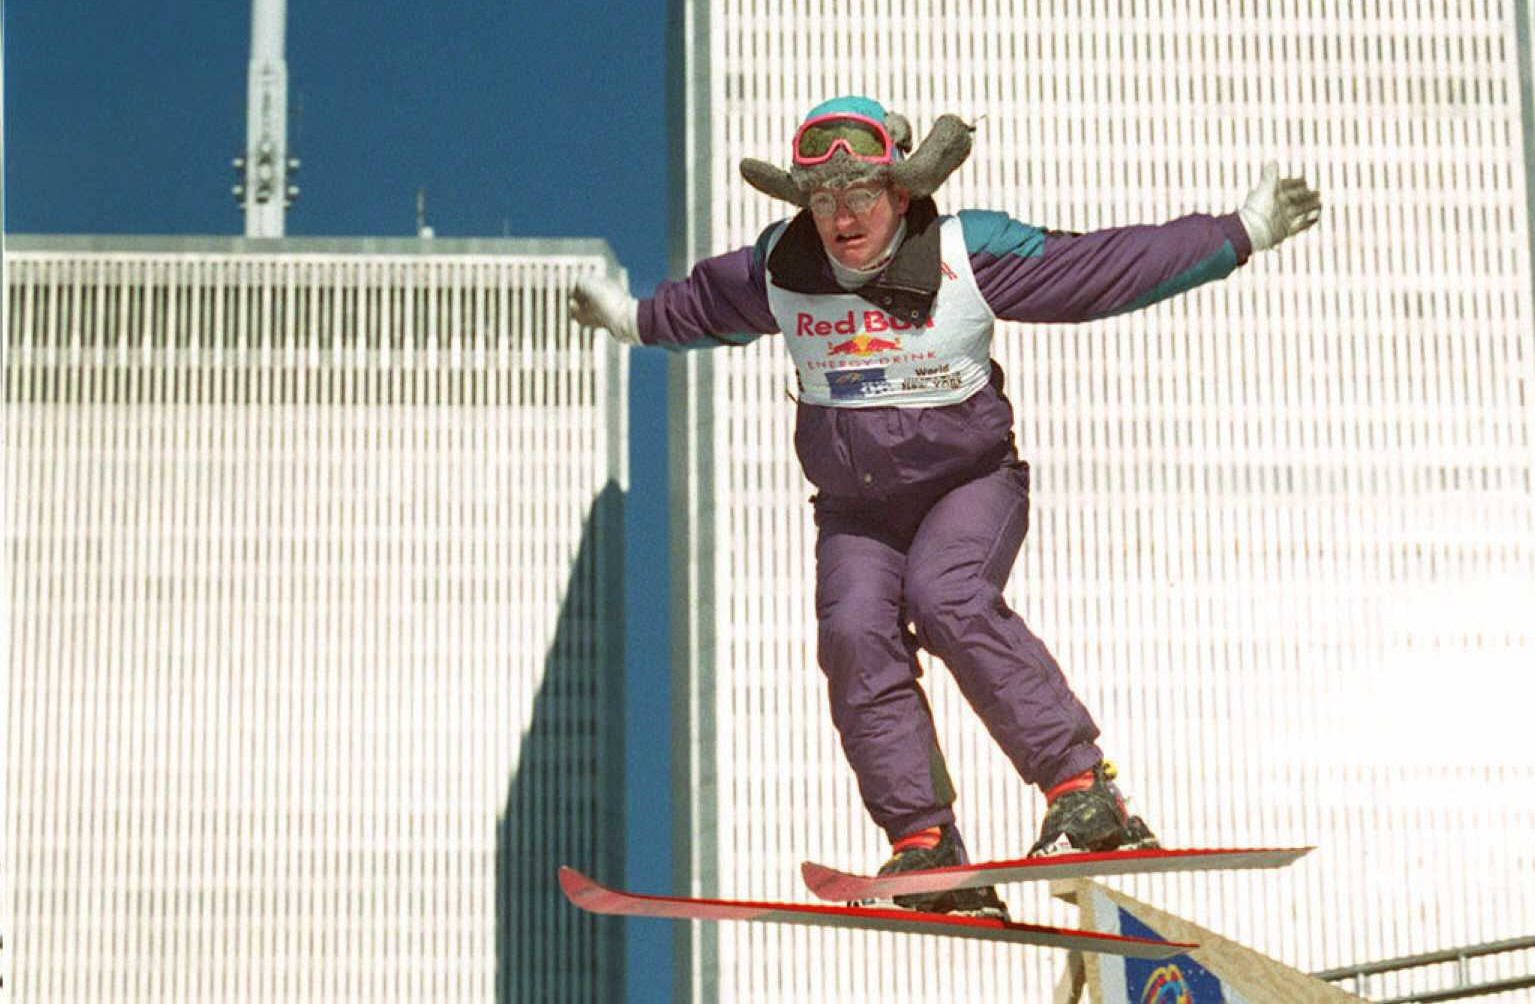 Eddie the Eagle remains as one of the most famous Winter Olympians ©Getty Images